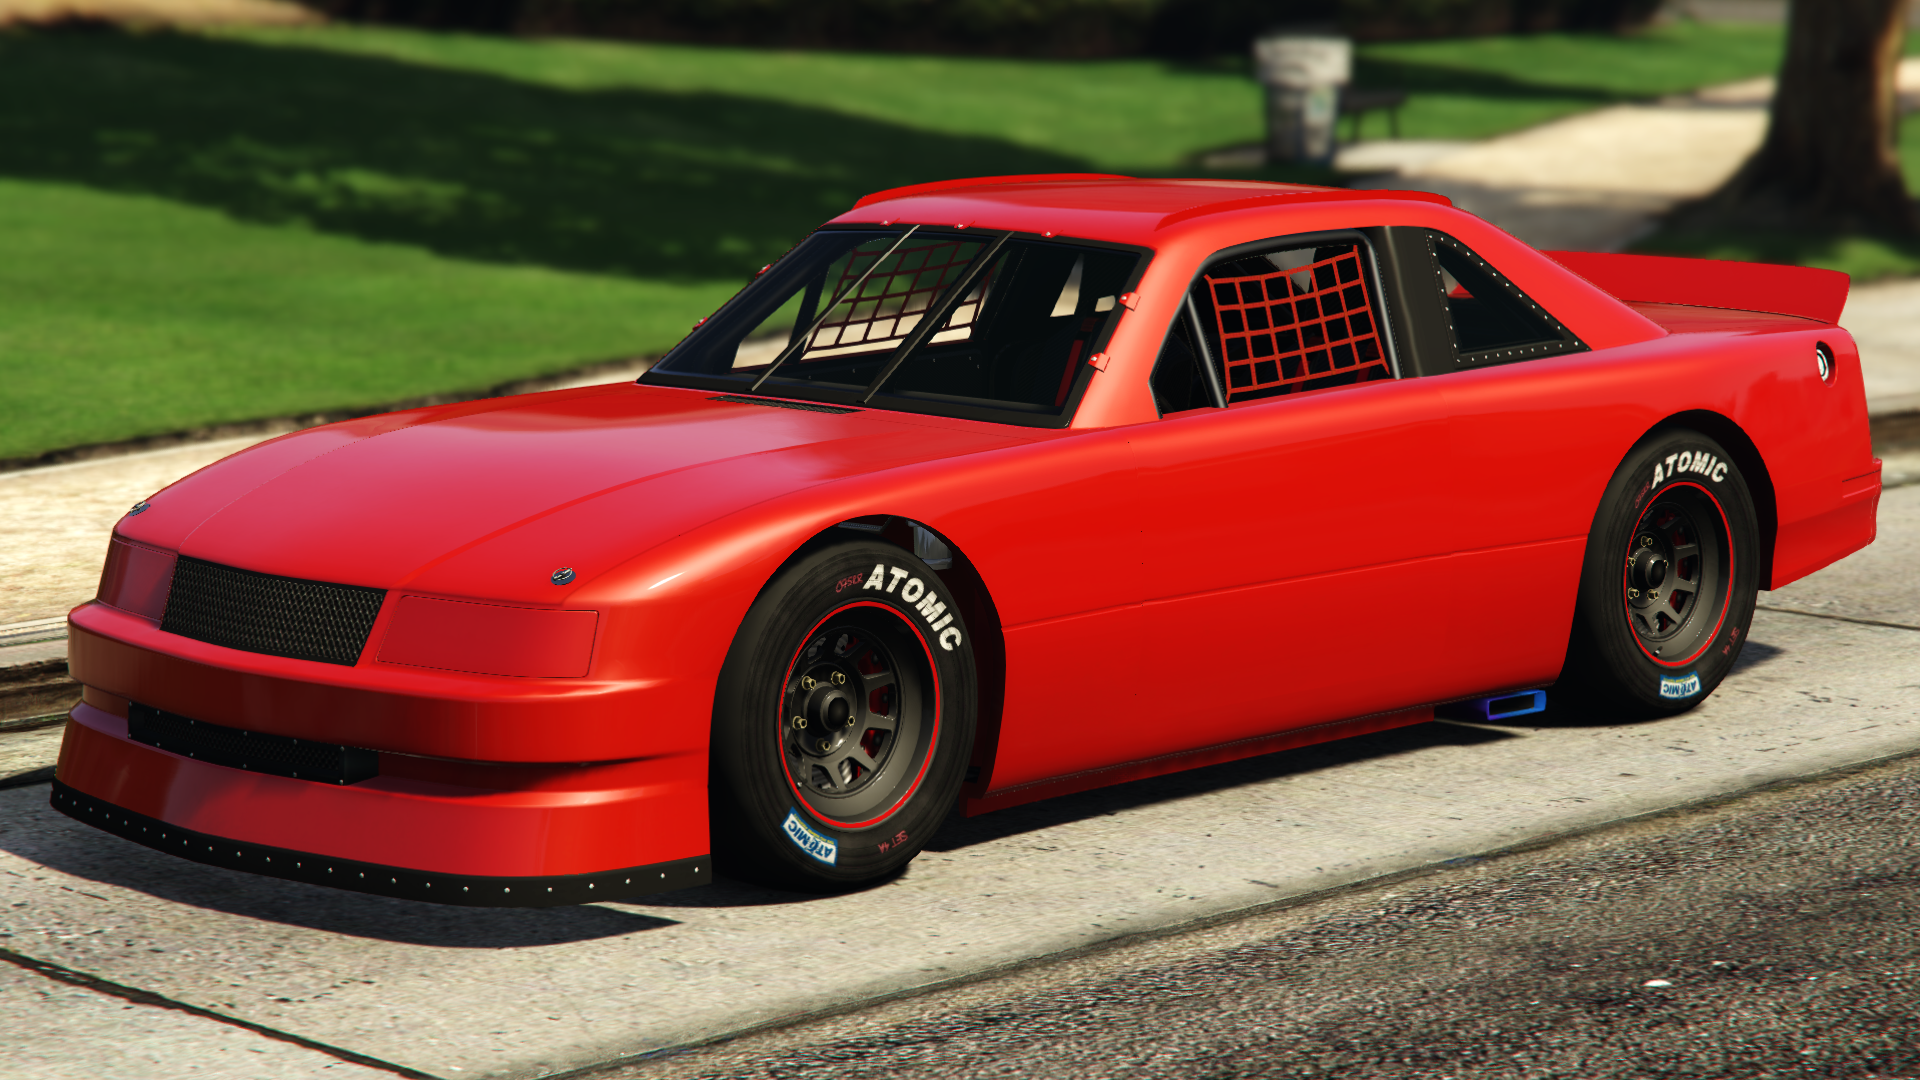 Hotring Sabre | GTA Wiki | FANDOM powered by Wikia